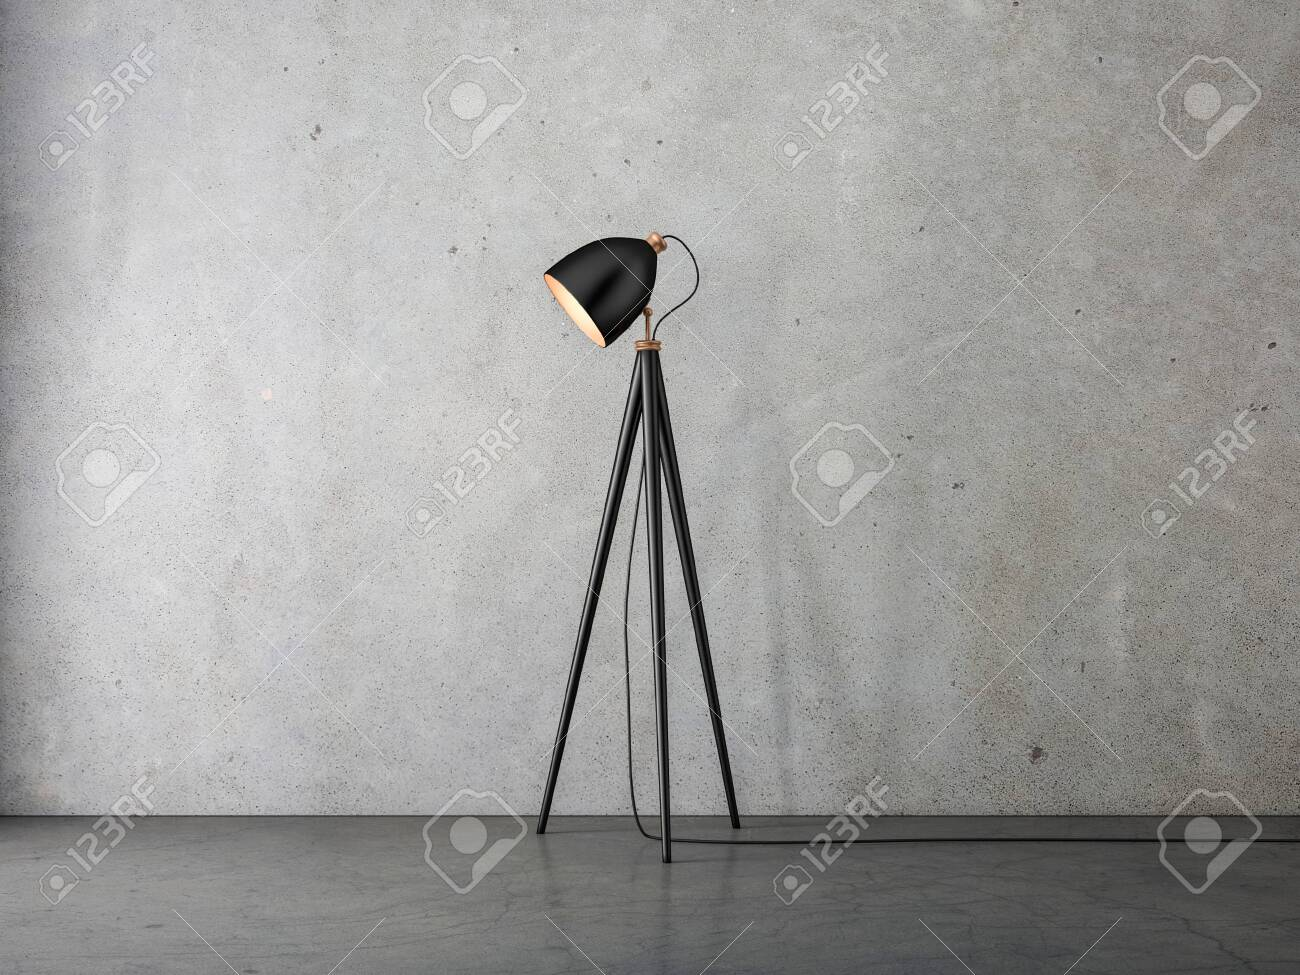 Modern Floor Lamp On Tripod In Empty Room Stock Photo Picture And Royalty Free Image Image 135370876